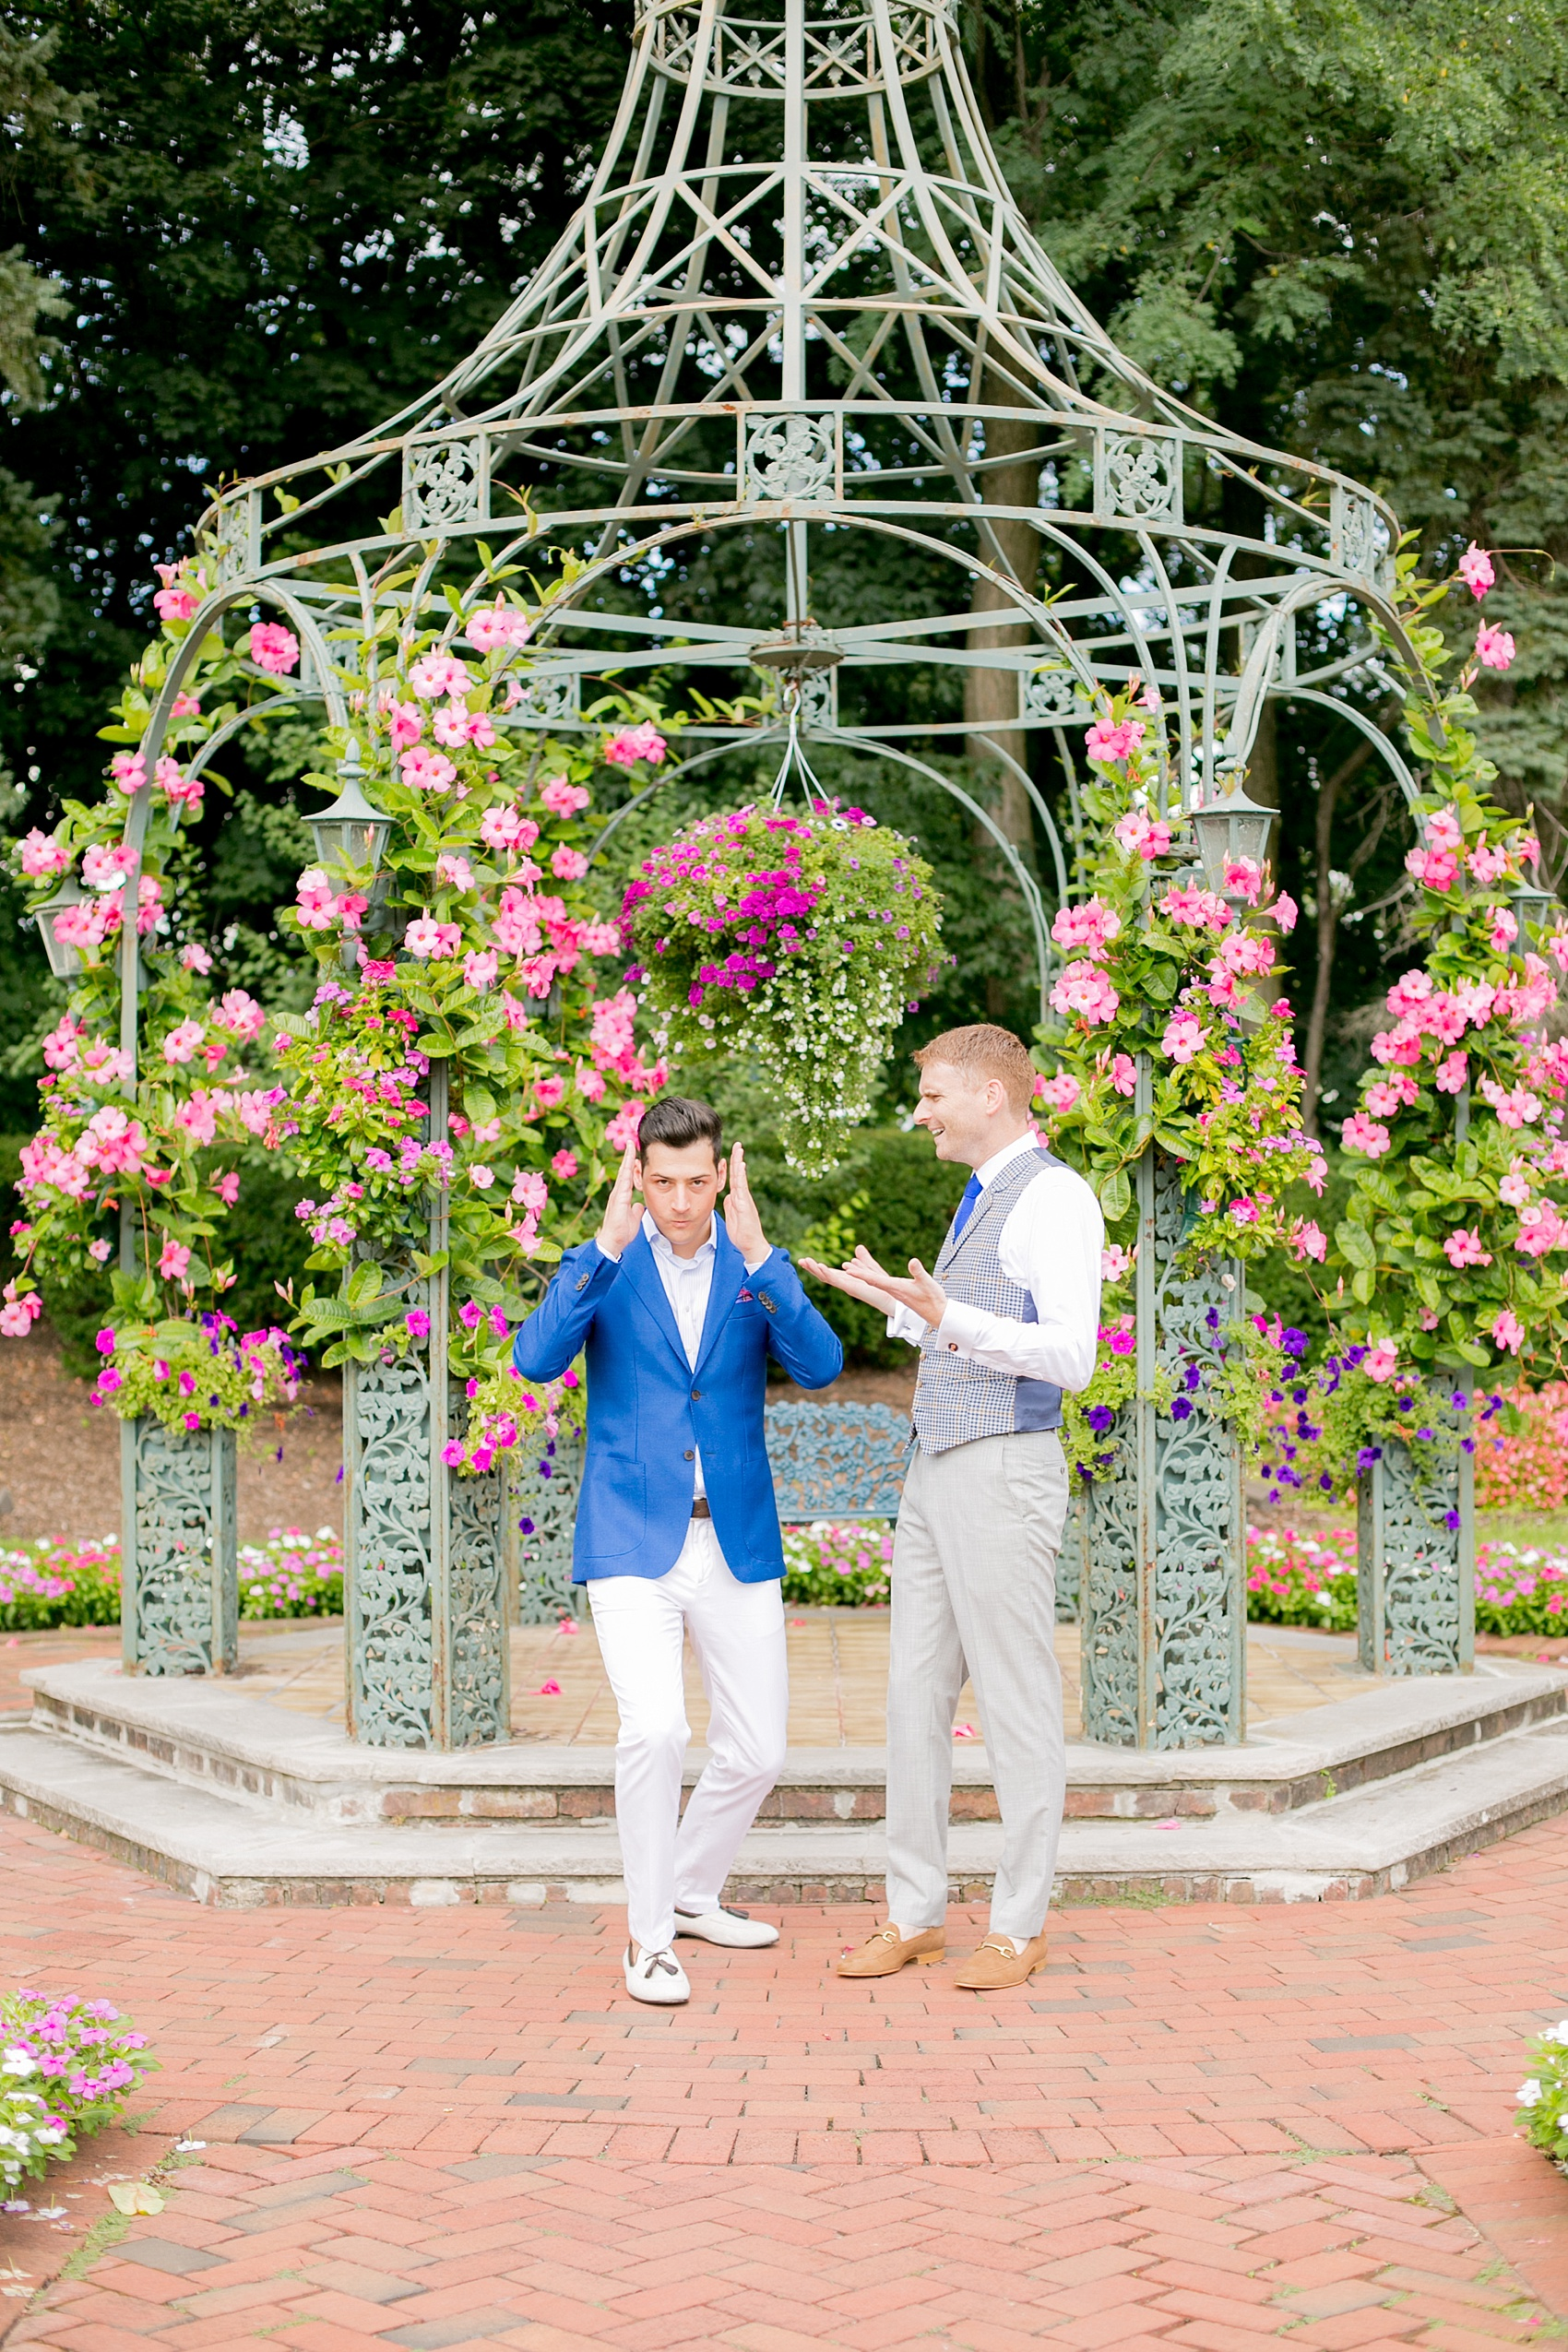 Mikkel Paige Photography photos of a summer, daytime gay wedding. An image of the grooms in a vest and blue suit in front of a trellis dome with pink and green landscaping at The Manor, in West Orange New Jersey.